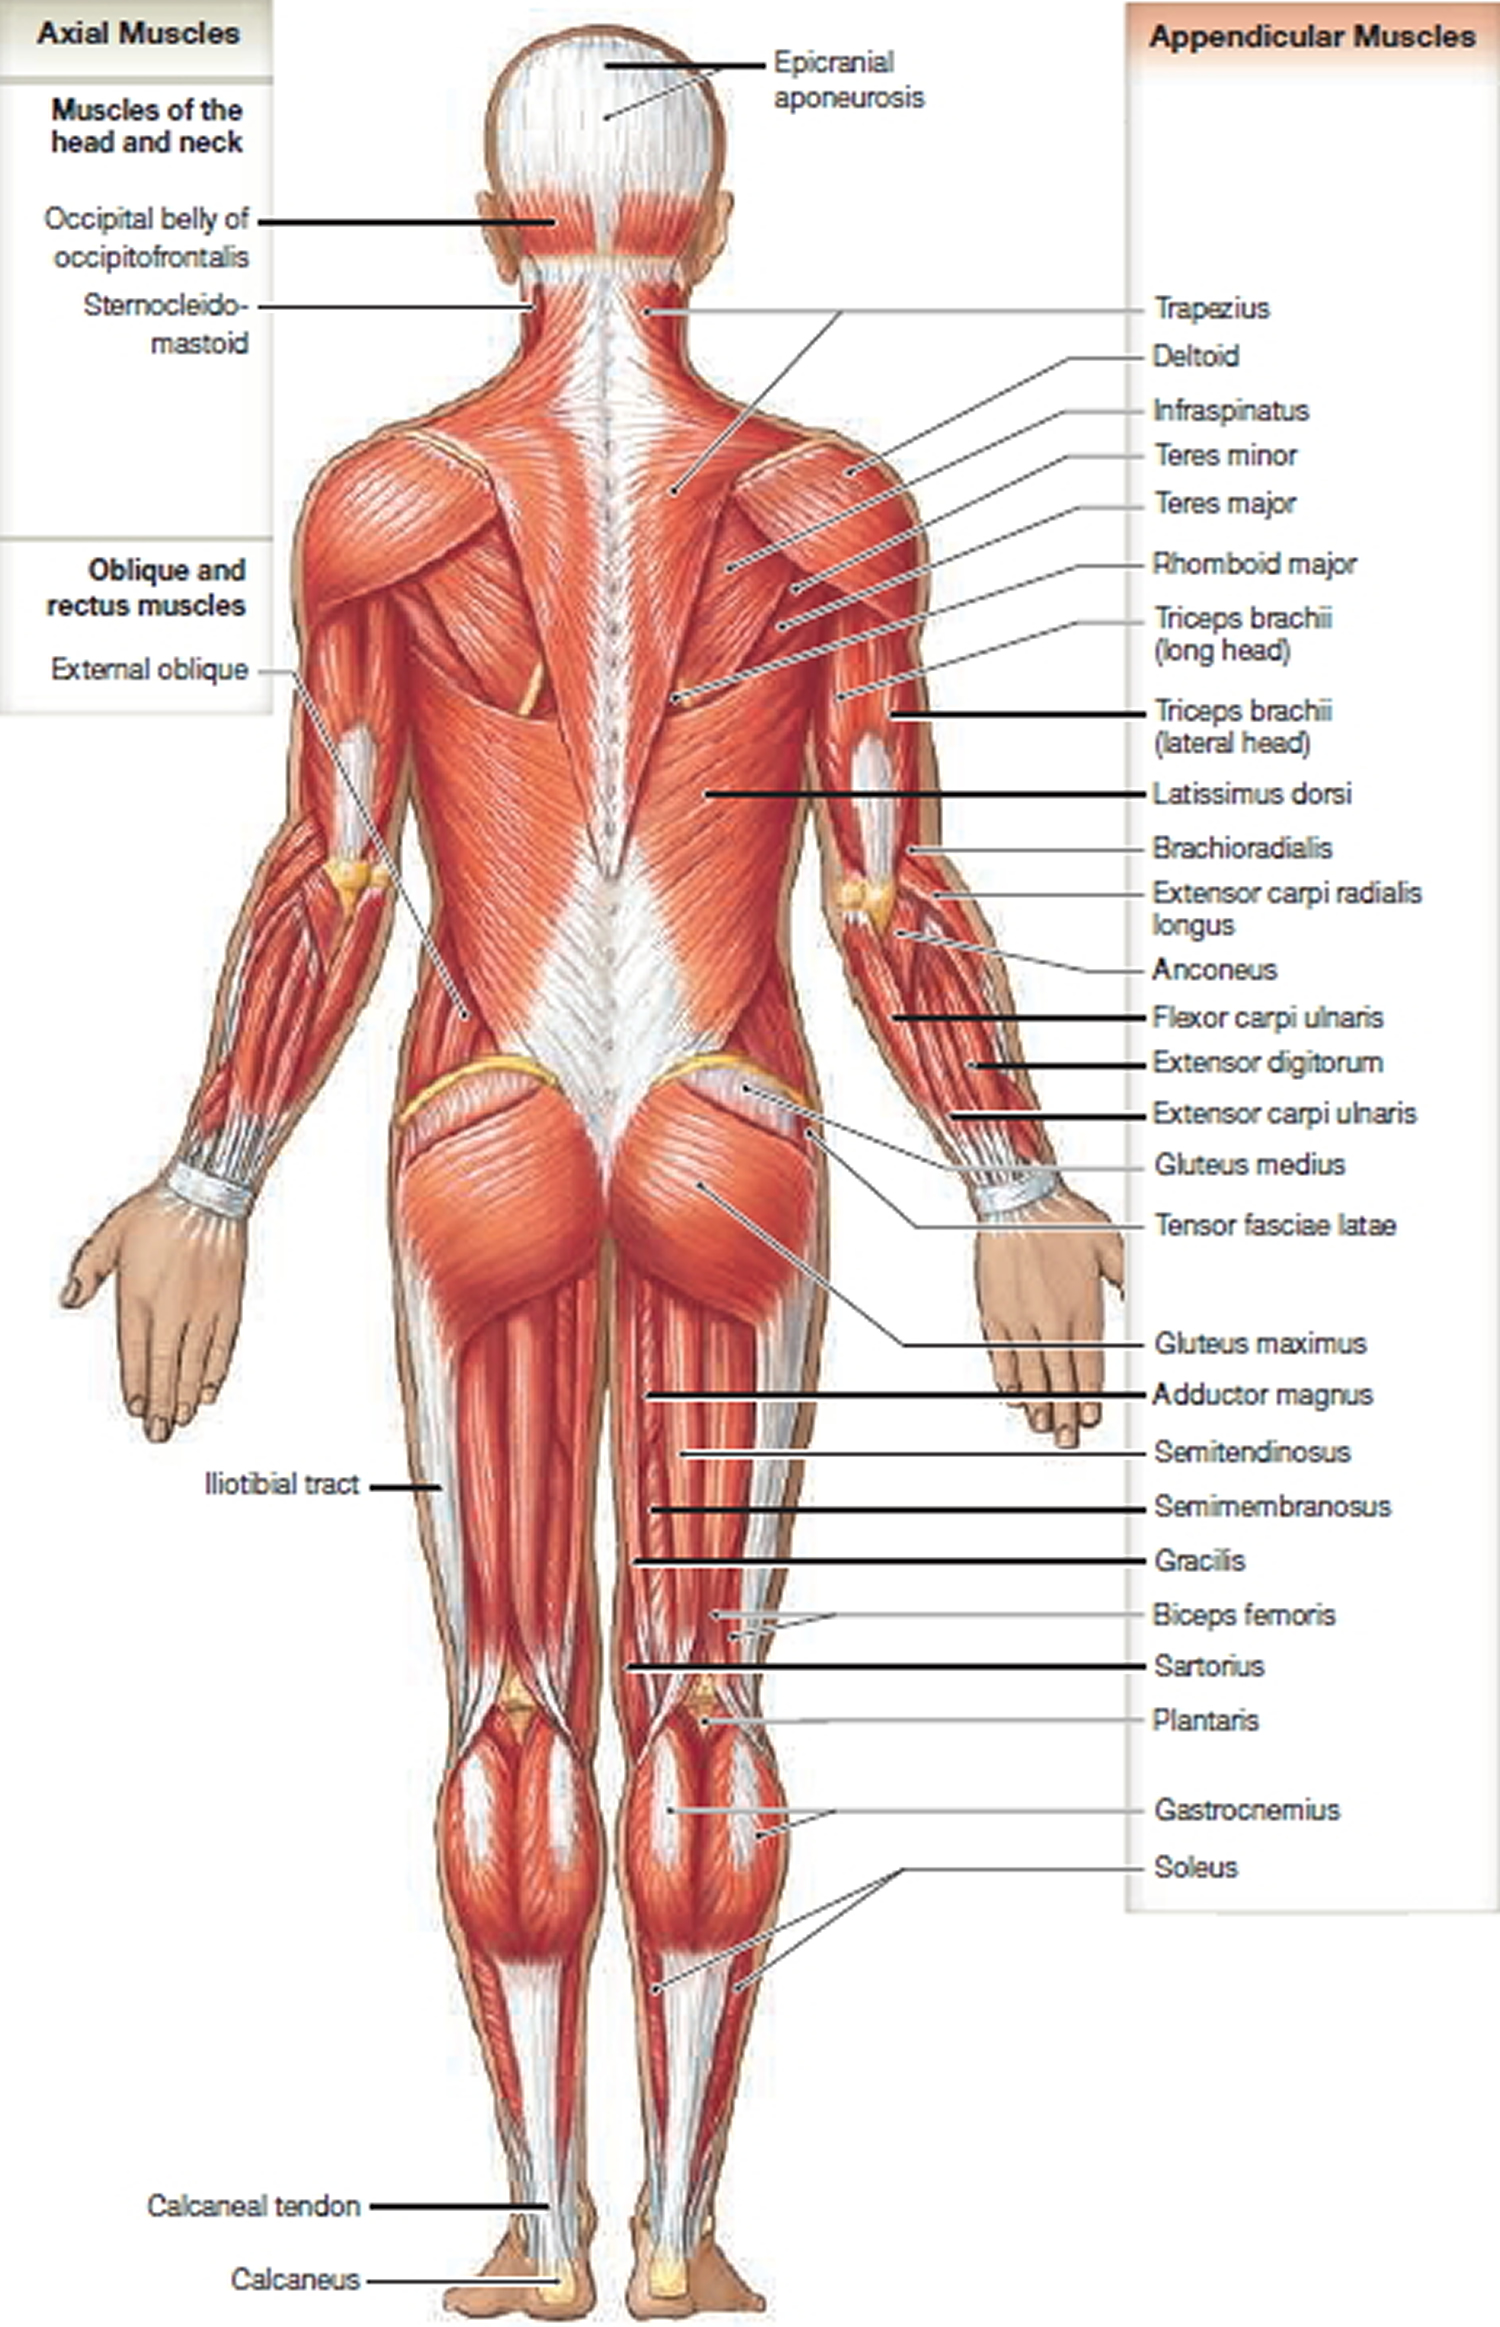 muscle anatomy - back view